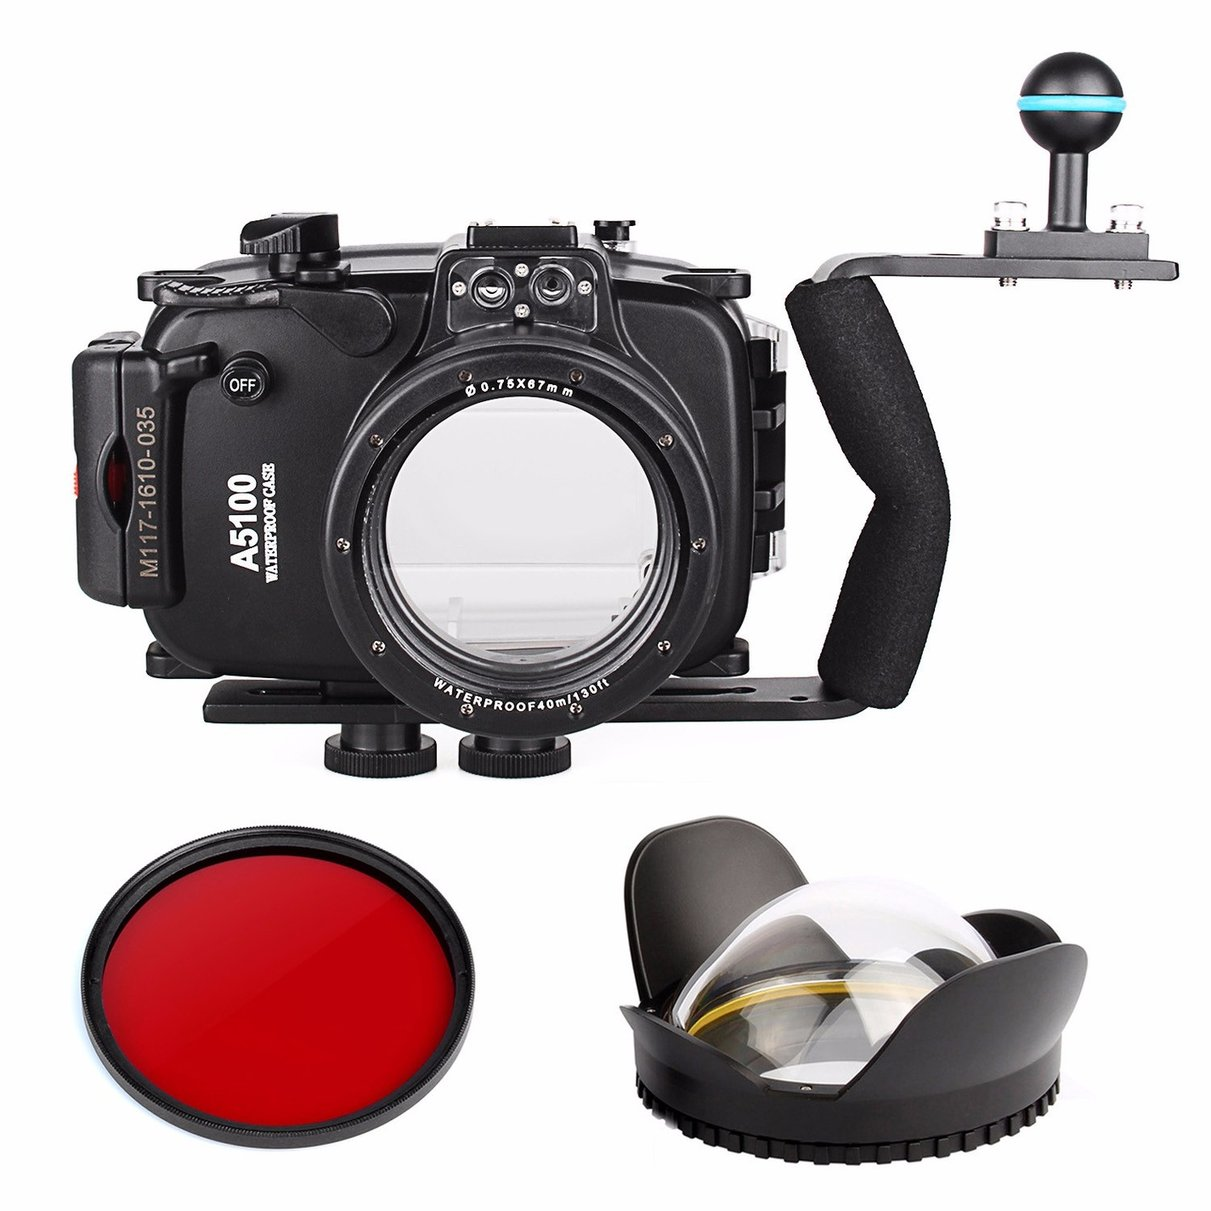 40m 130ft Waterproof Underwater Camera Housing Case Bag for Sony A5100 16-50mm Lens + Diving handle + Fisheye Lens + Red Filter meikon underwater camera housing for sony a6000 16 50mm 40m 130ft diving handle 67mm red diving filter